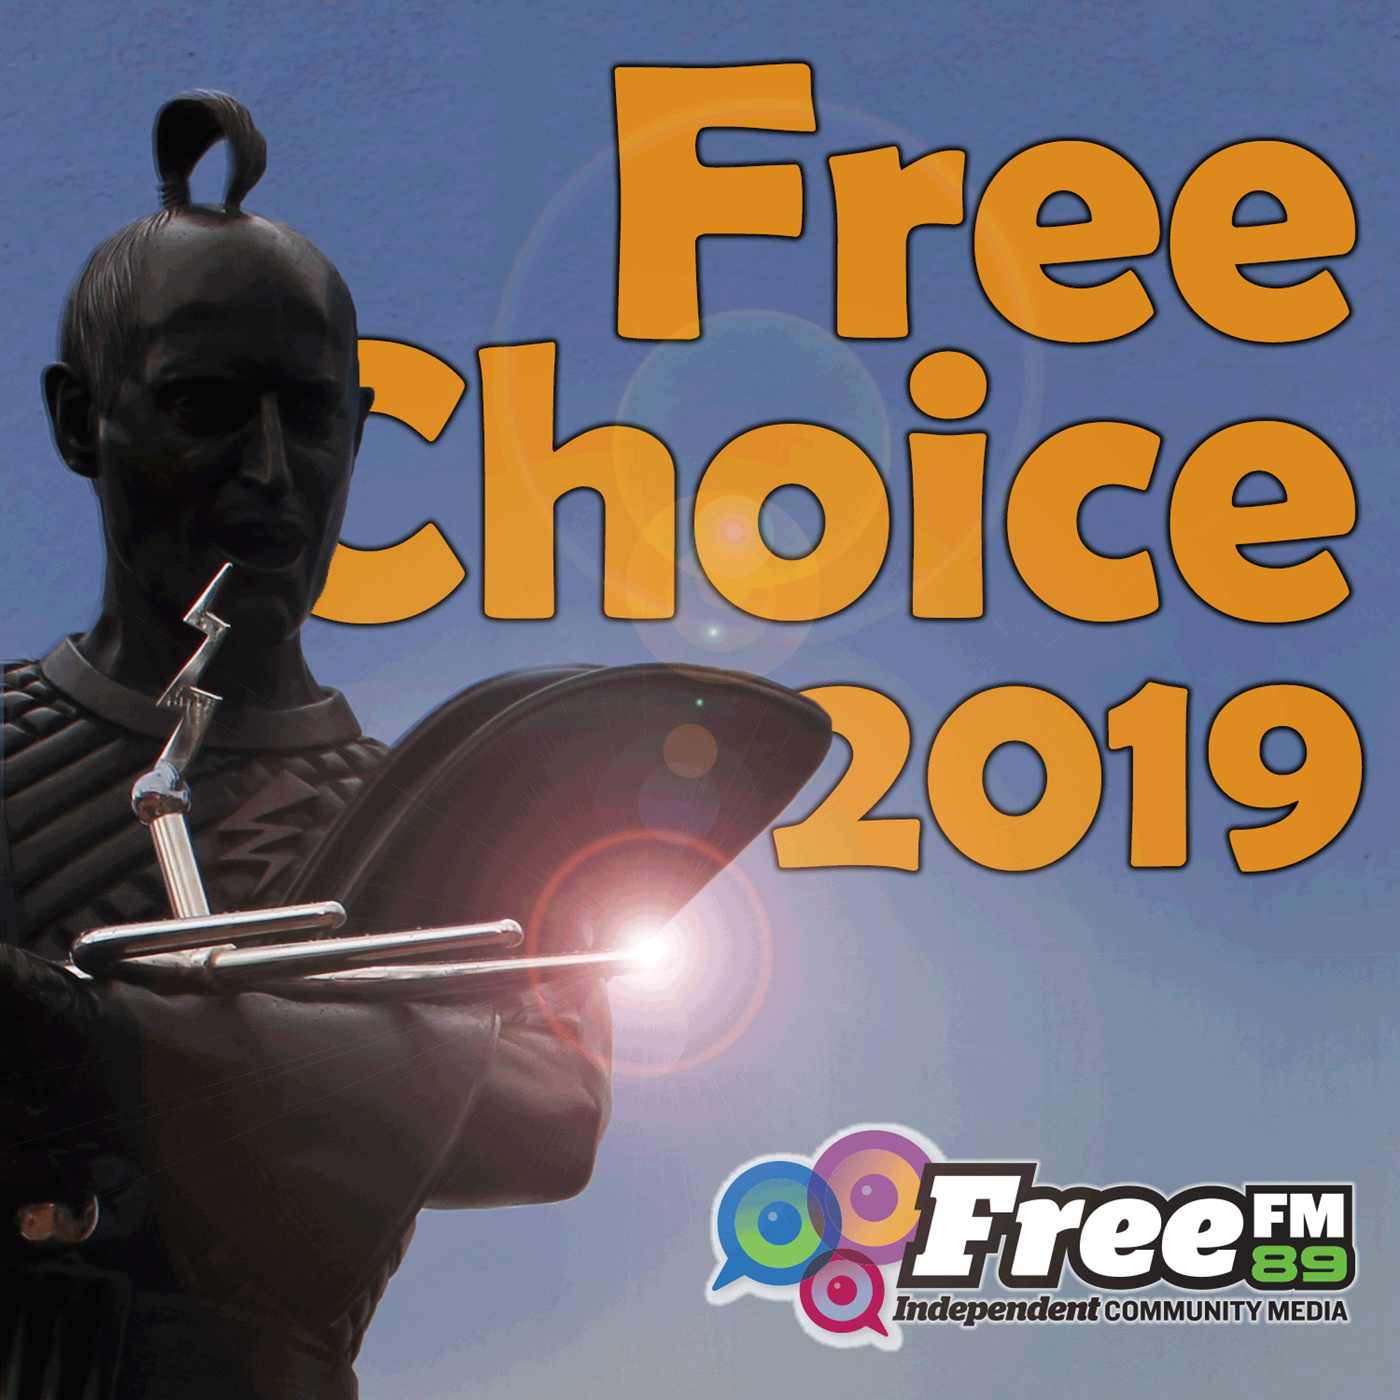 Free FM - Free Choice 2019 - Matthew Small - 23-08-2019